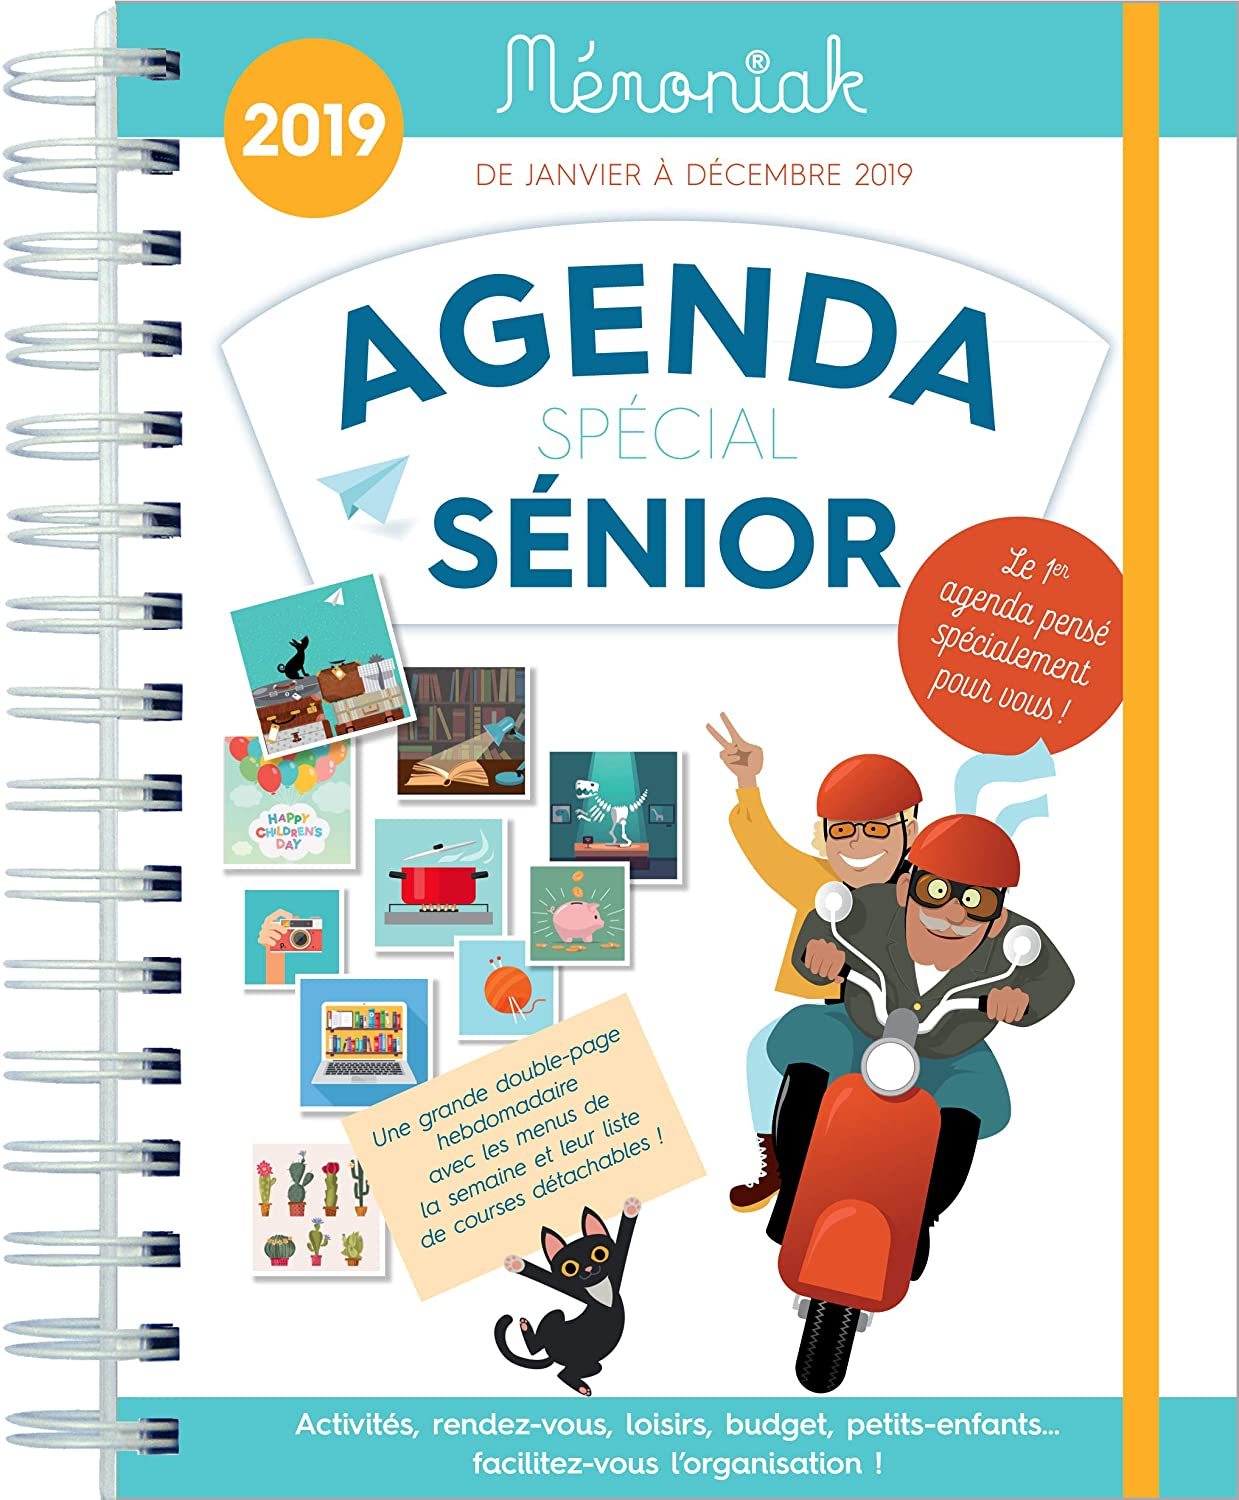 Agenda Special Senior memoniak 2019: Collectif: Amazon.es ...